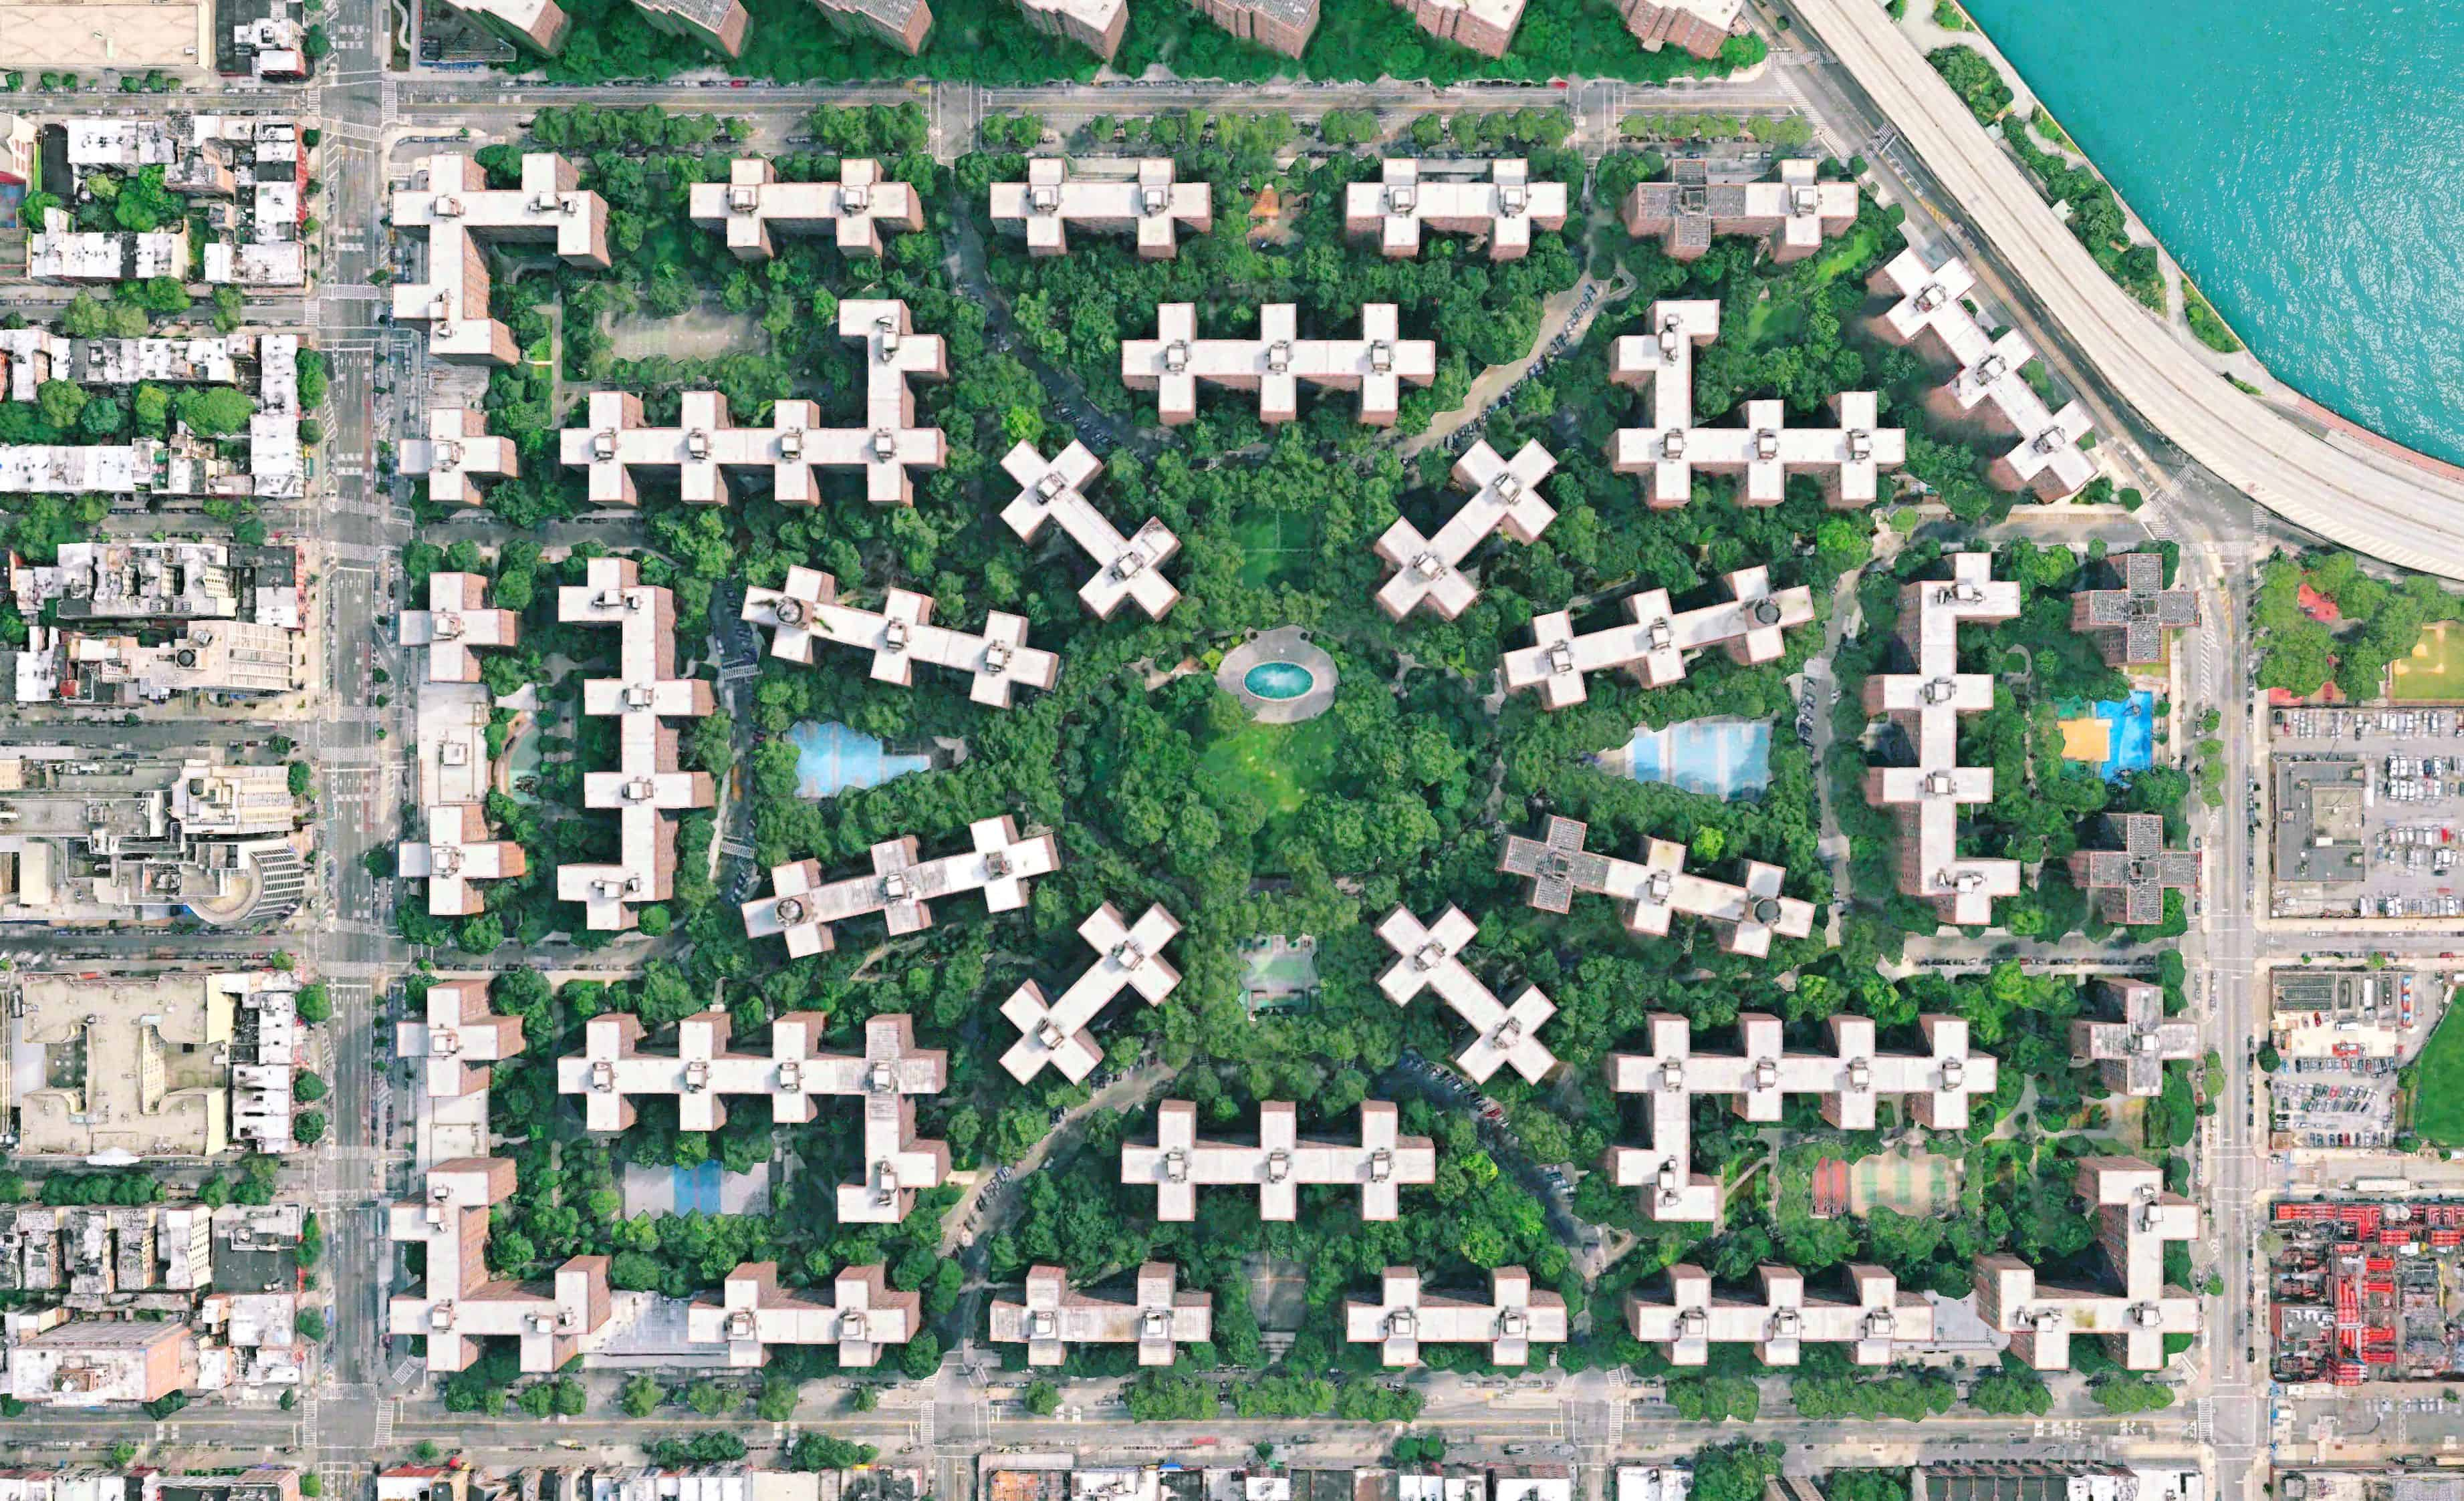 Stuytown, New York, USA - Aerial View - Affordable Housing - Le Corbusier - Urban Planning